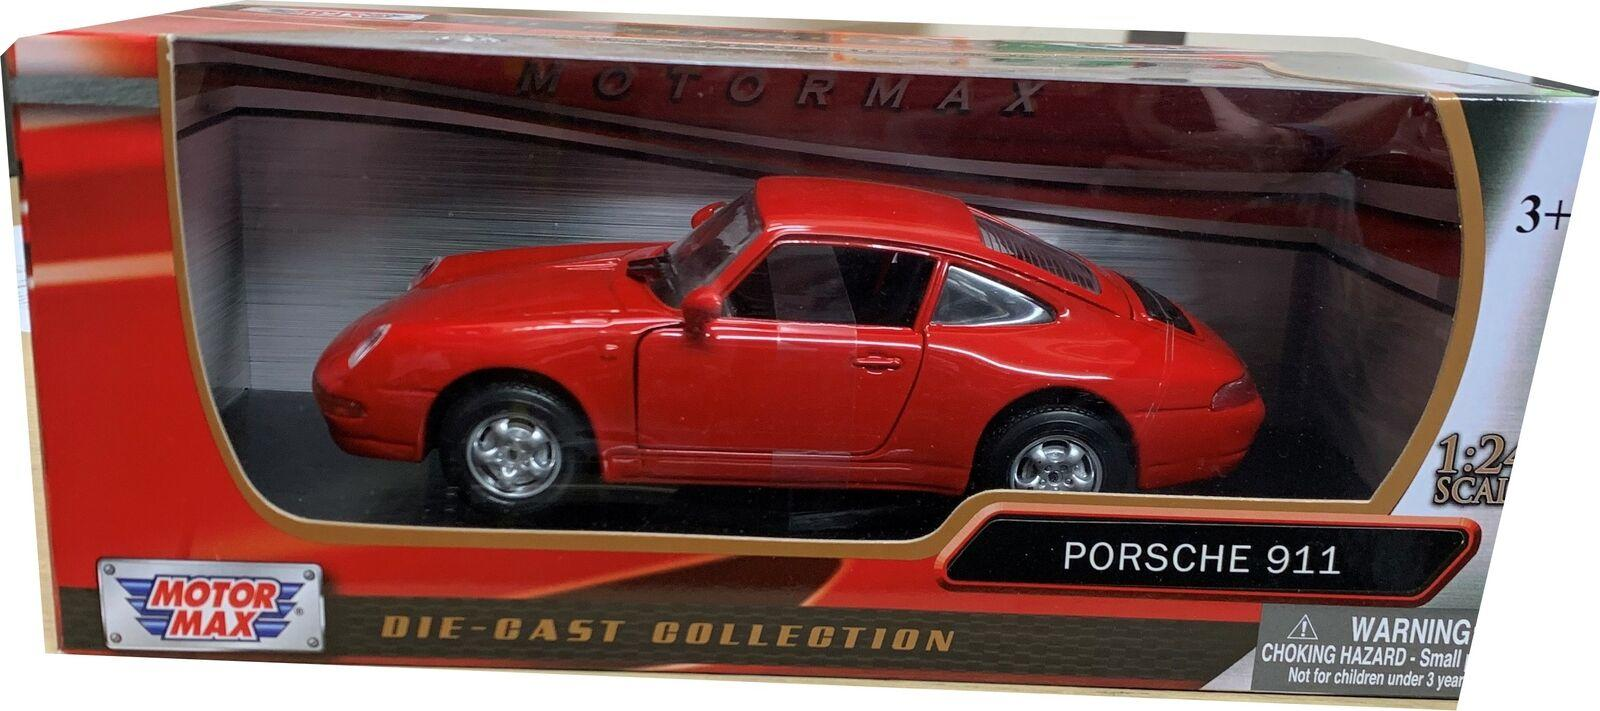 Porsche 911 (993) in red 1:24 scale model from Motormax